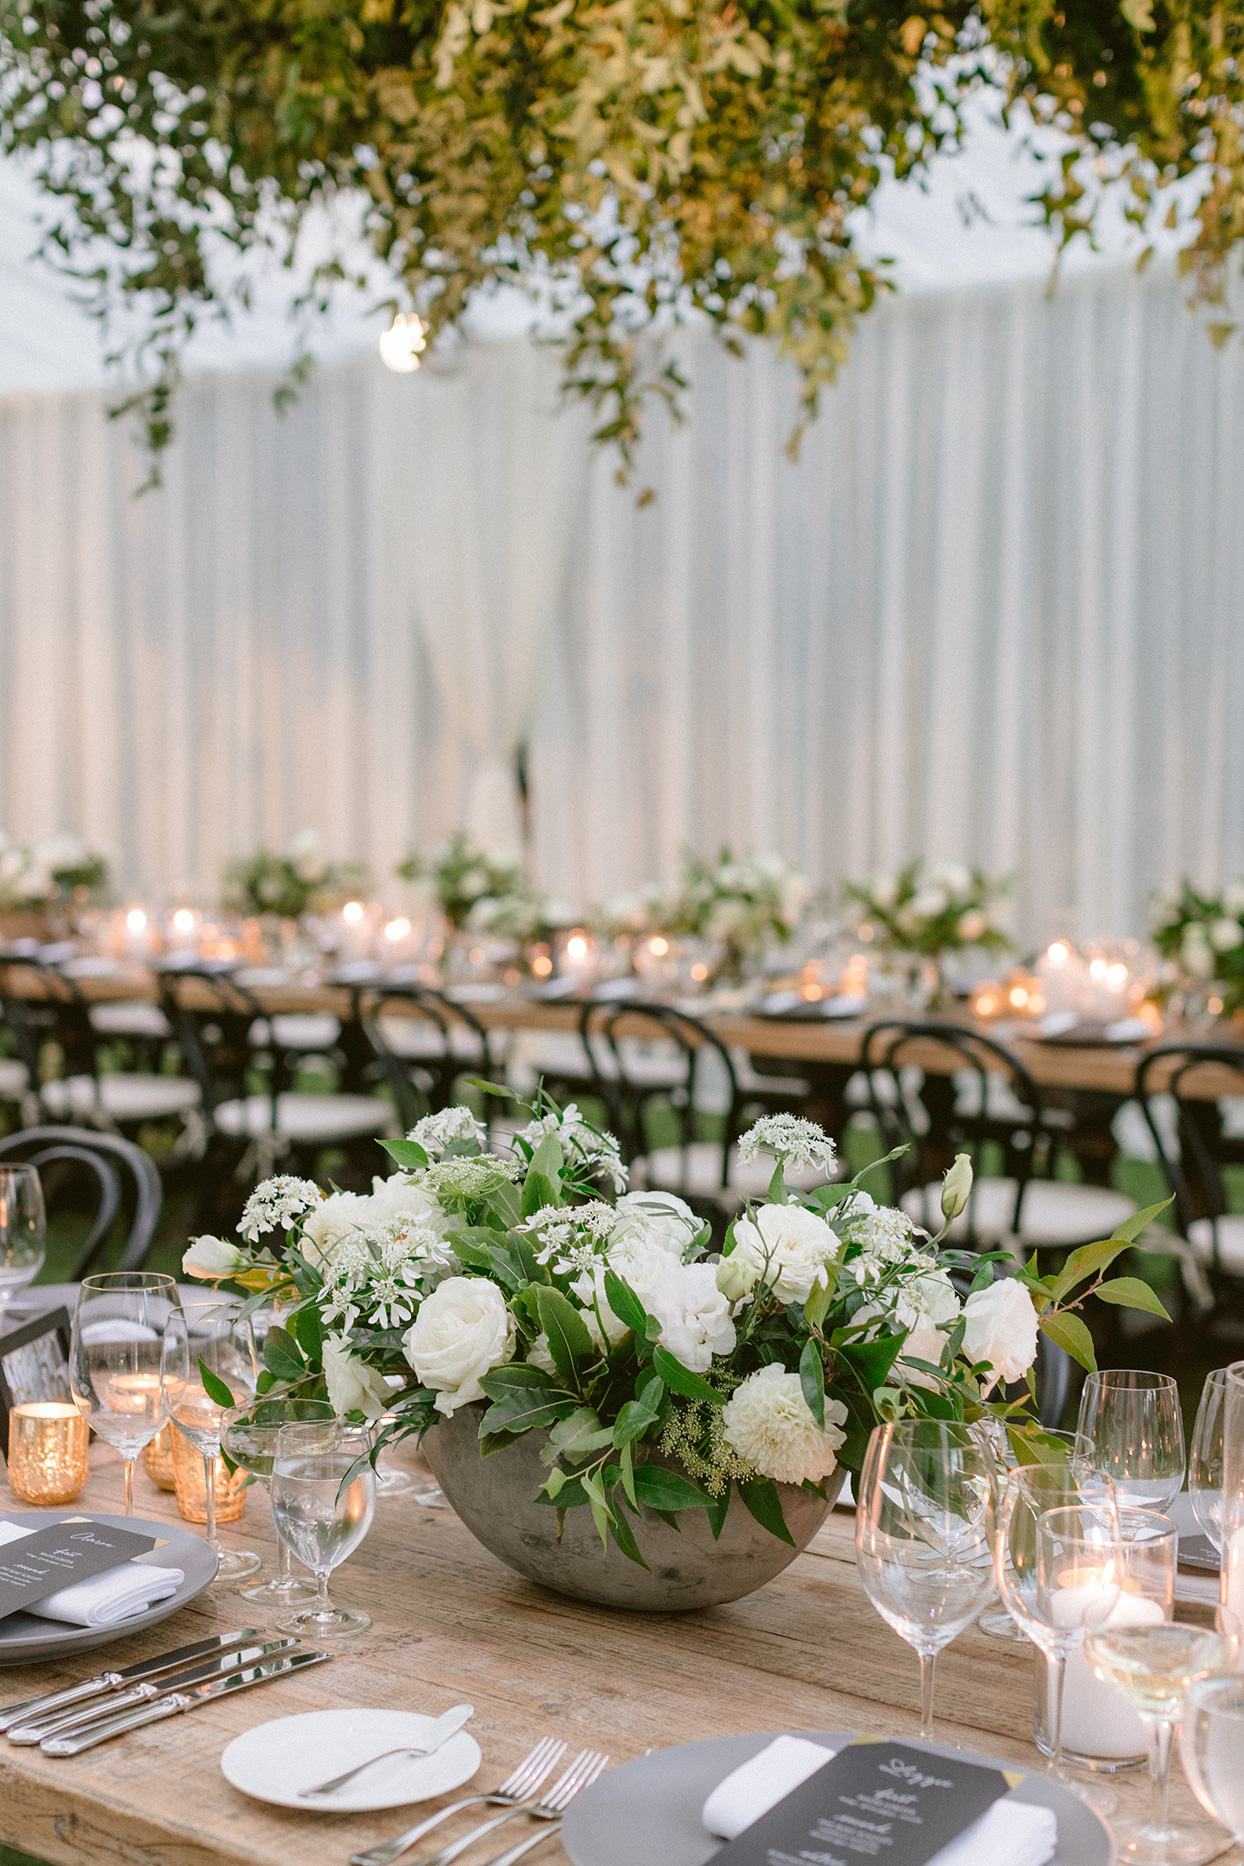 Floral centerpieces on long trestle table